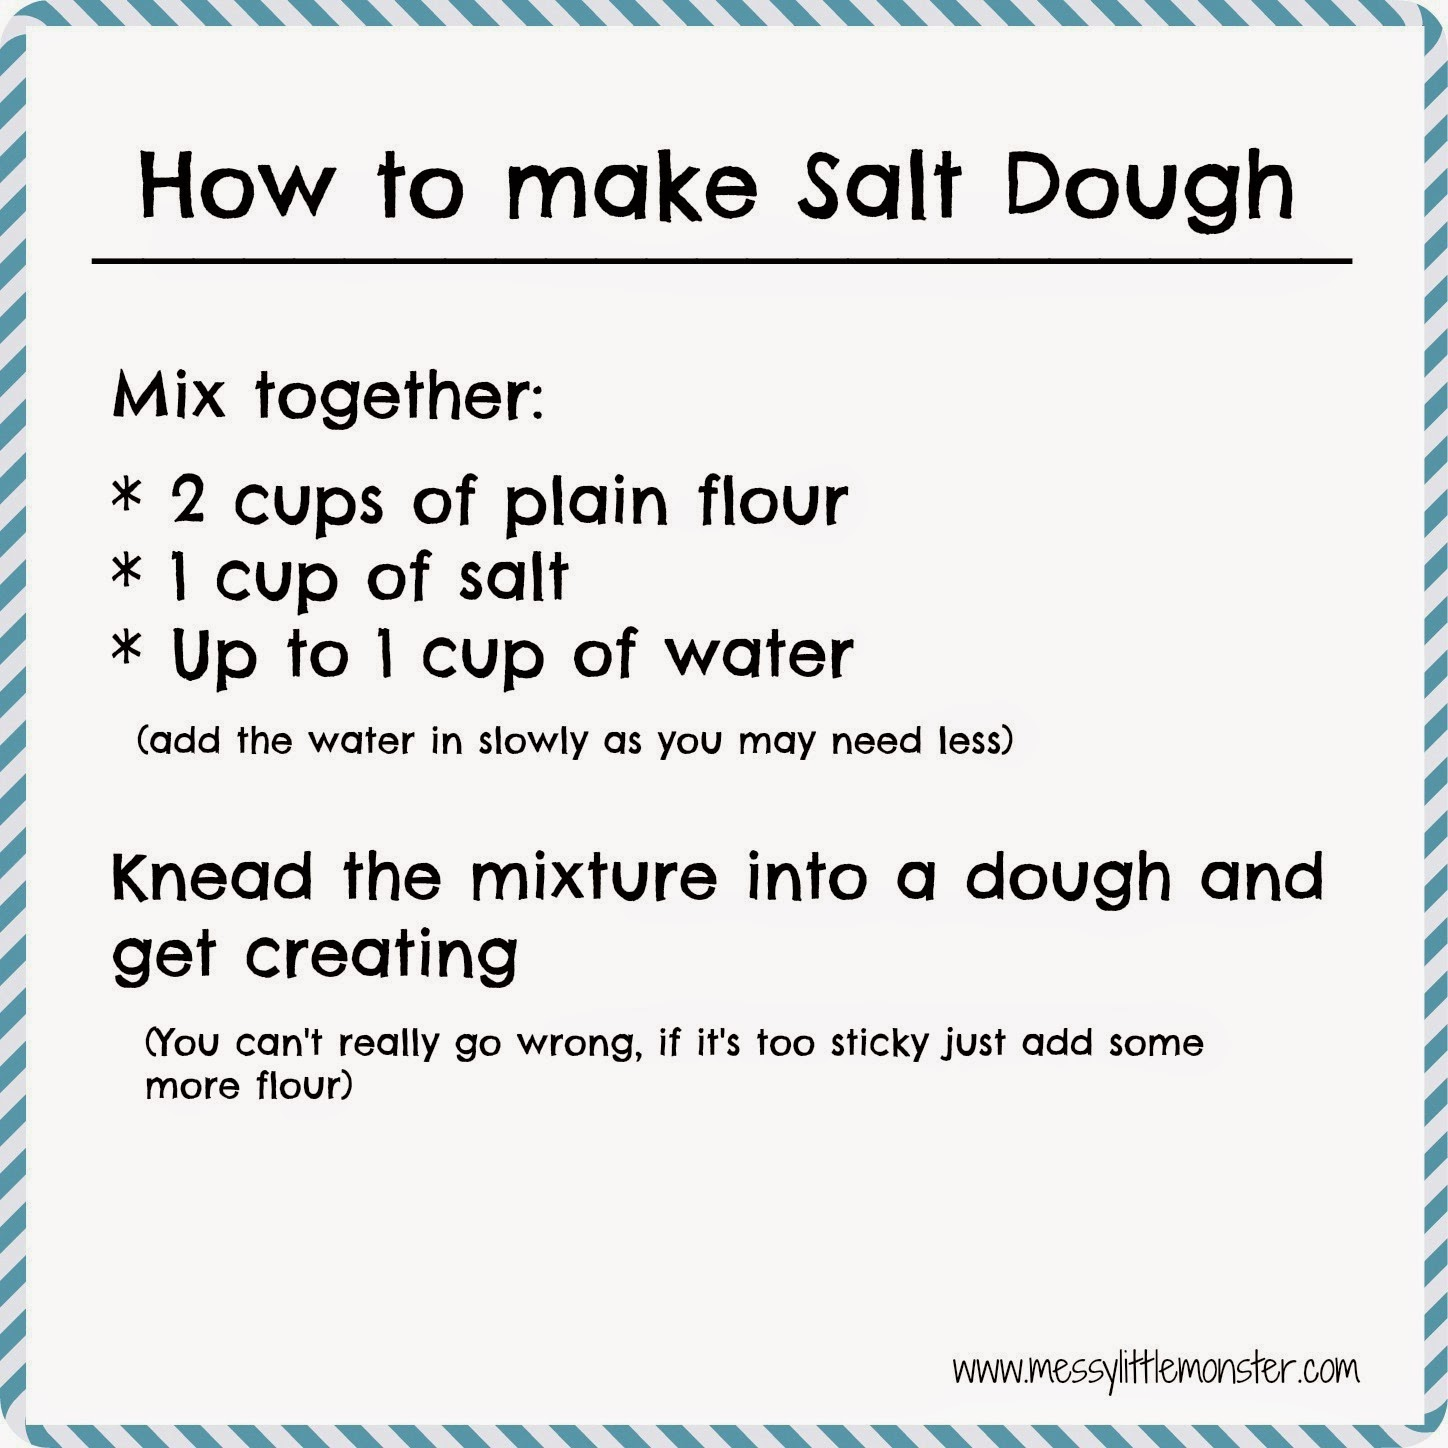 How To Make Sour Dough Christmas Decorations : How to make coloured salt dough messy little monster